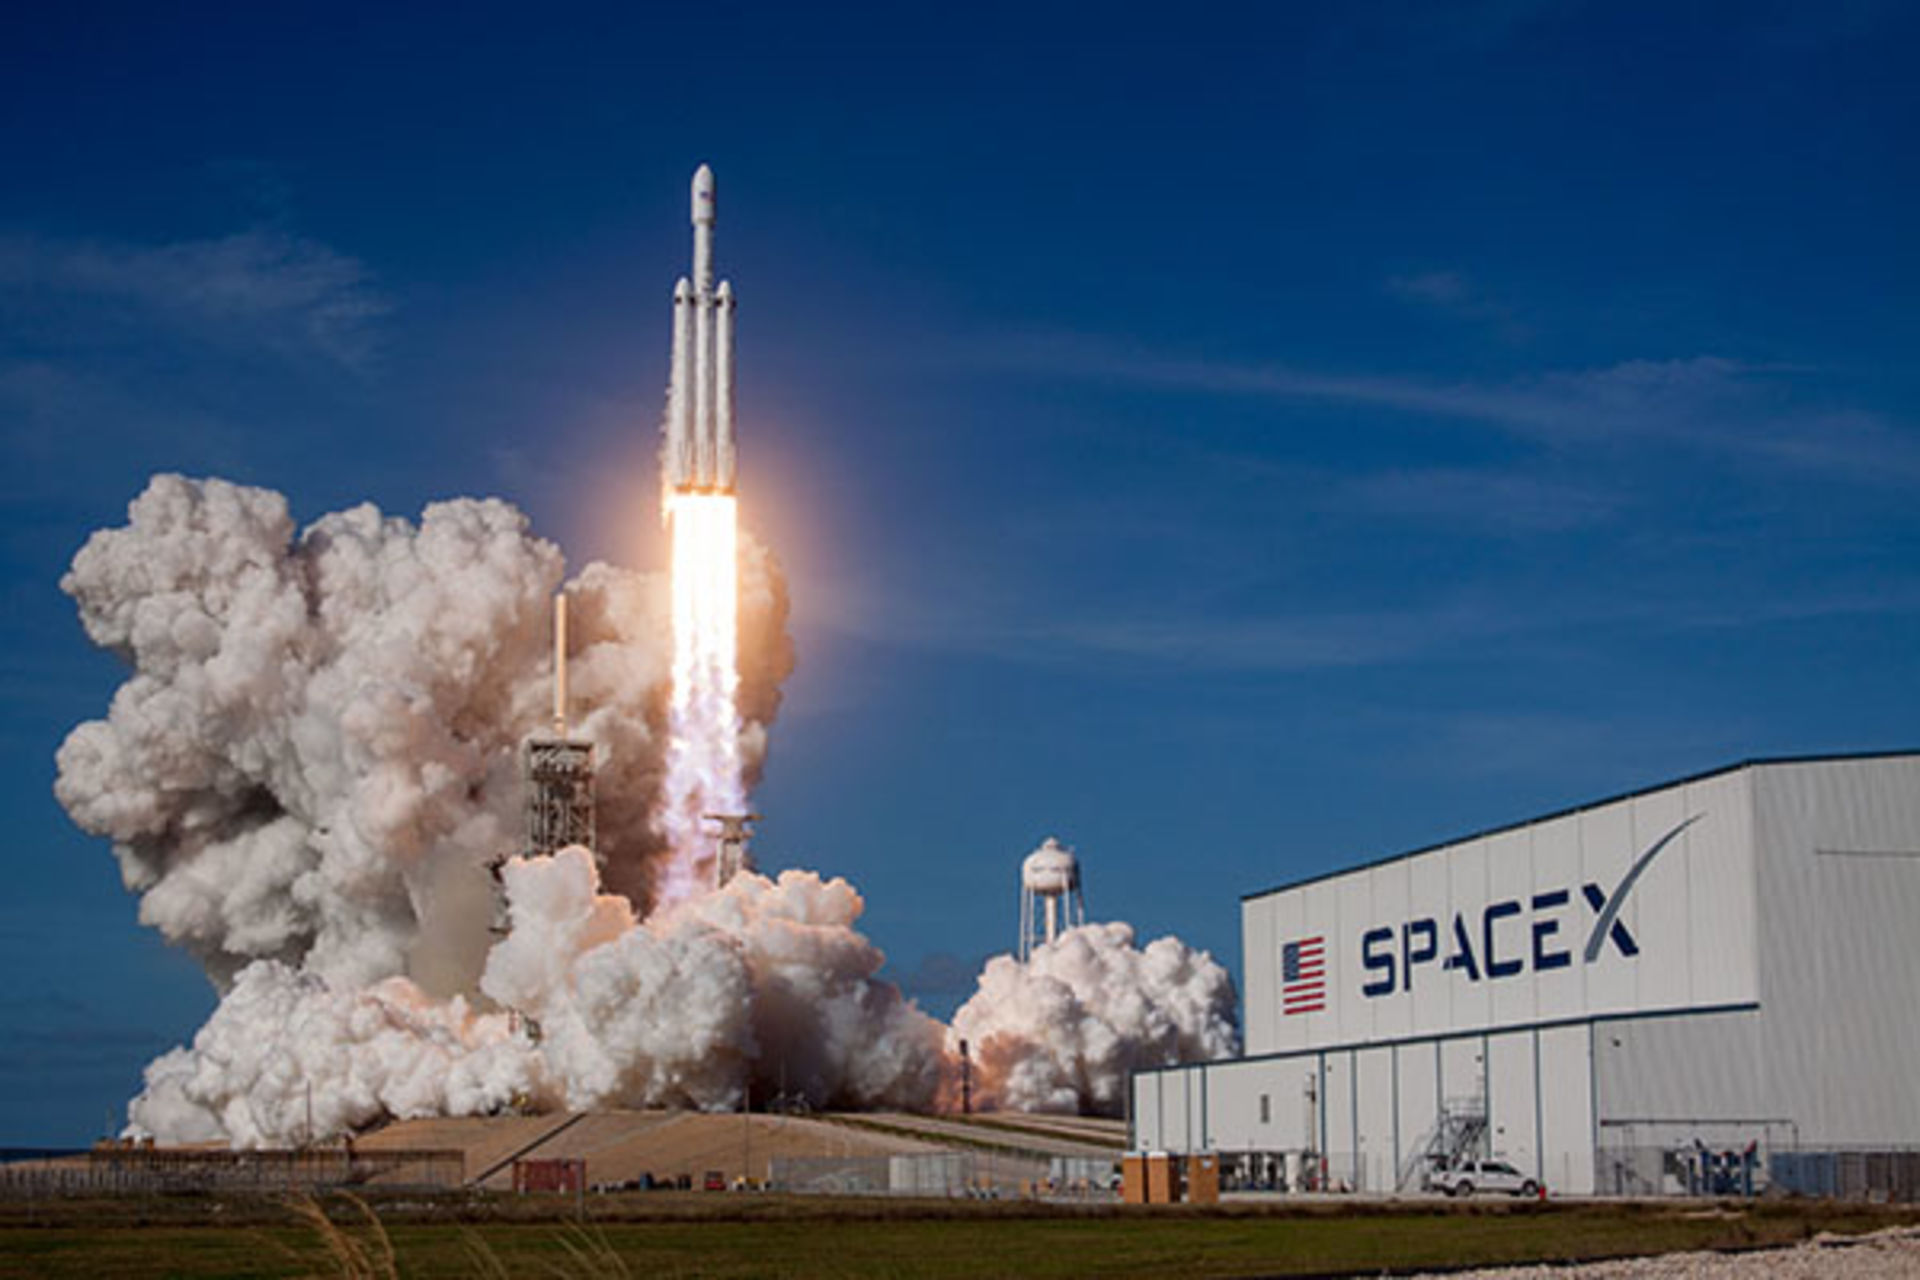 Falcon Heavy launch expected to boost traffic this weekend